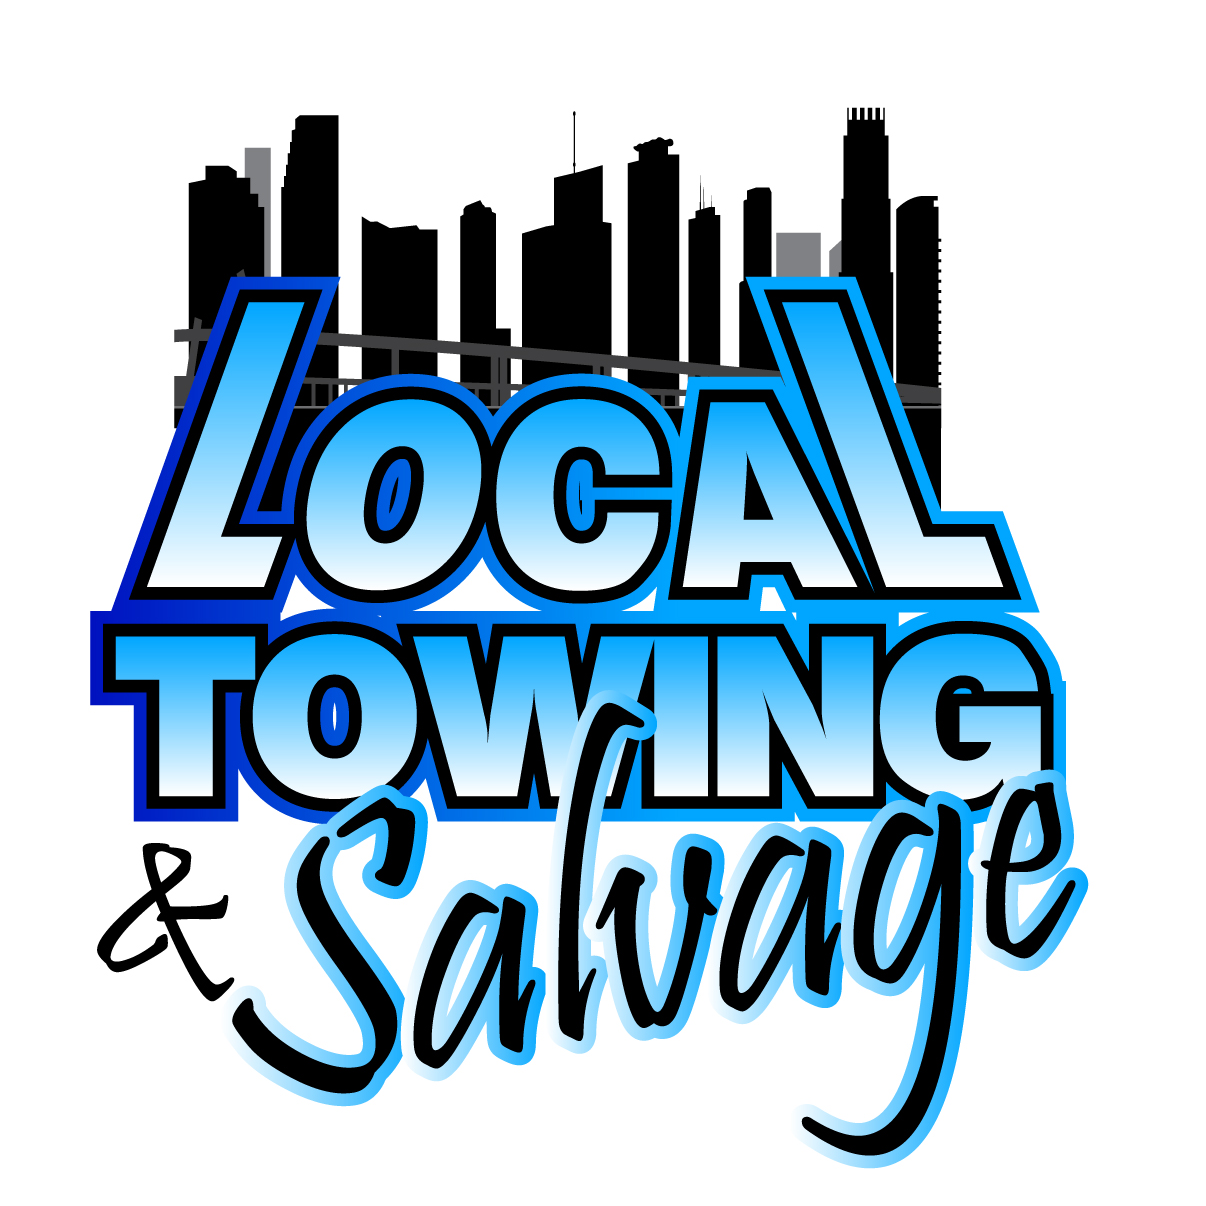 Local Towing & Salvage logo